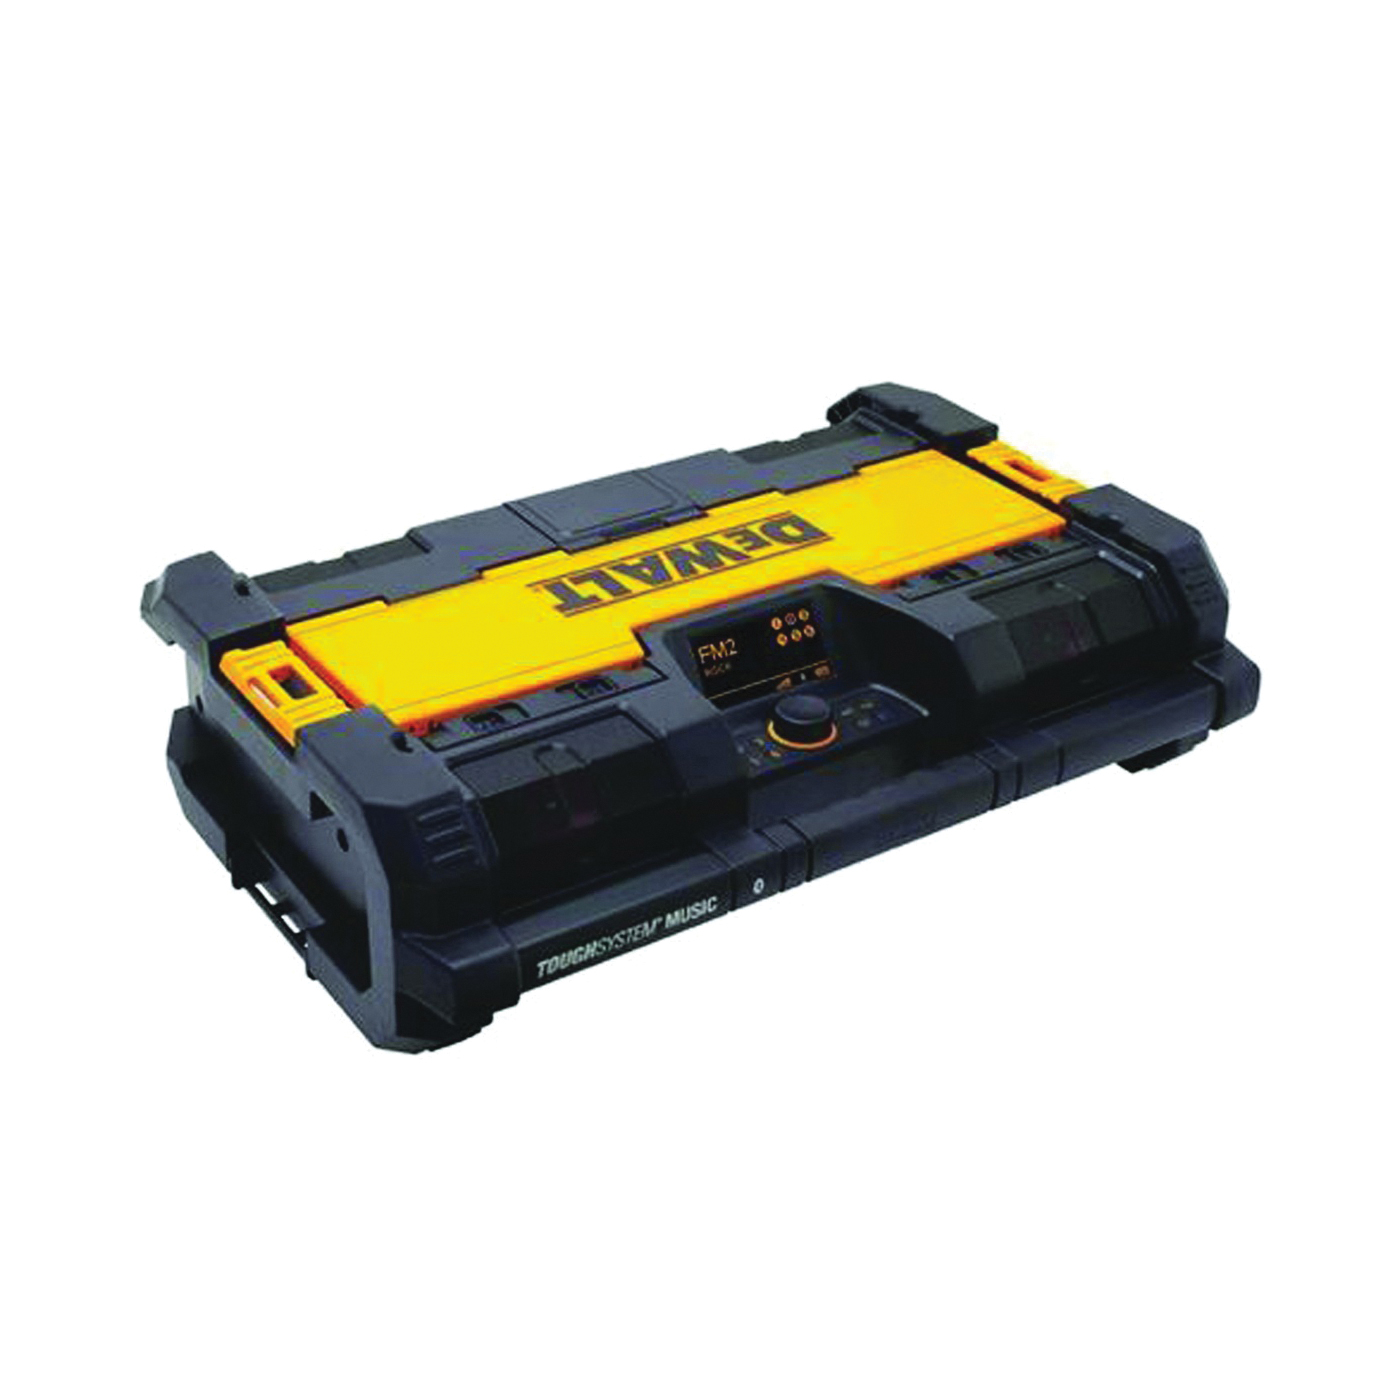 Picture of DeWALT DWST08810 Radio with Charger, Bare Tool, 12, 20 V Battery, Battery Included: No